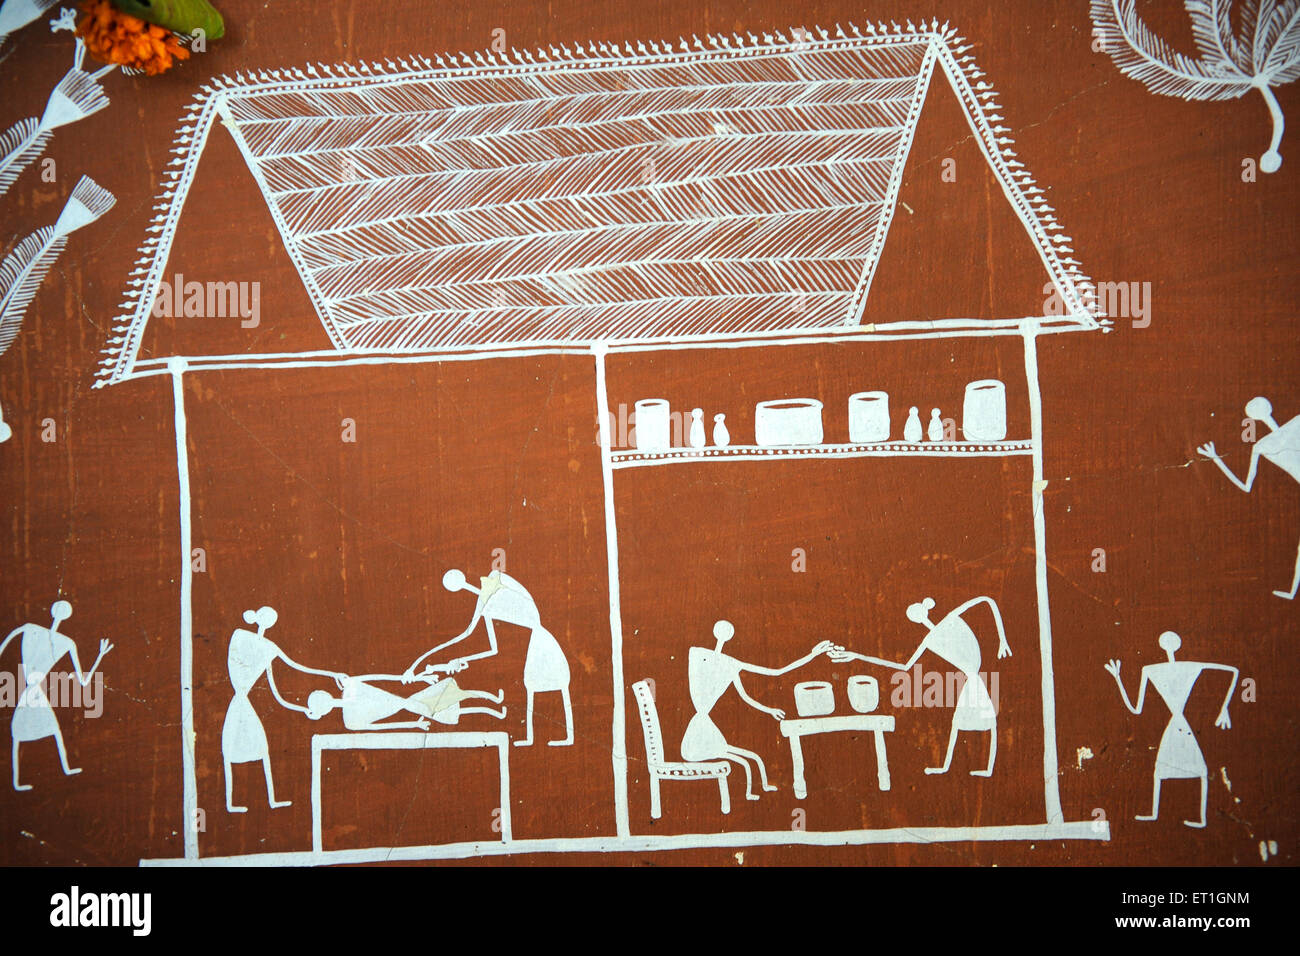 Warli painting maharashtra india stock photo 83628320 alamy warli painting maharashtra india altavistaventures Image collections